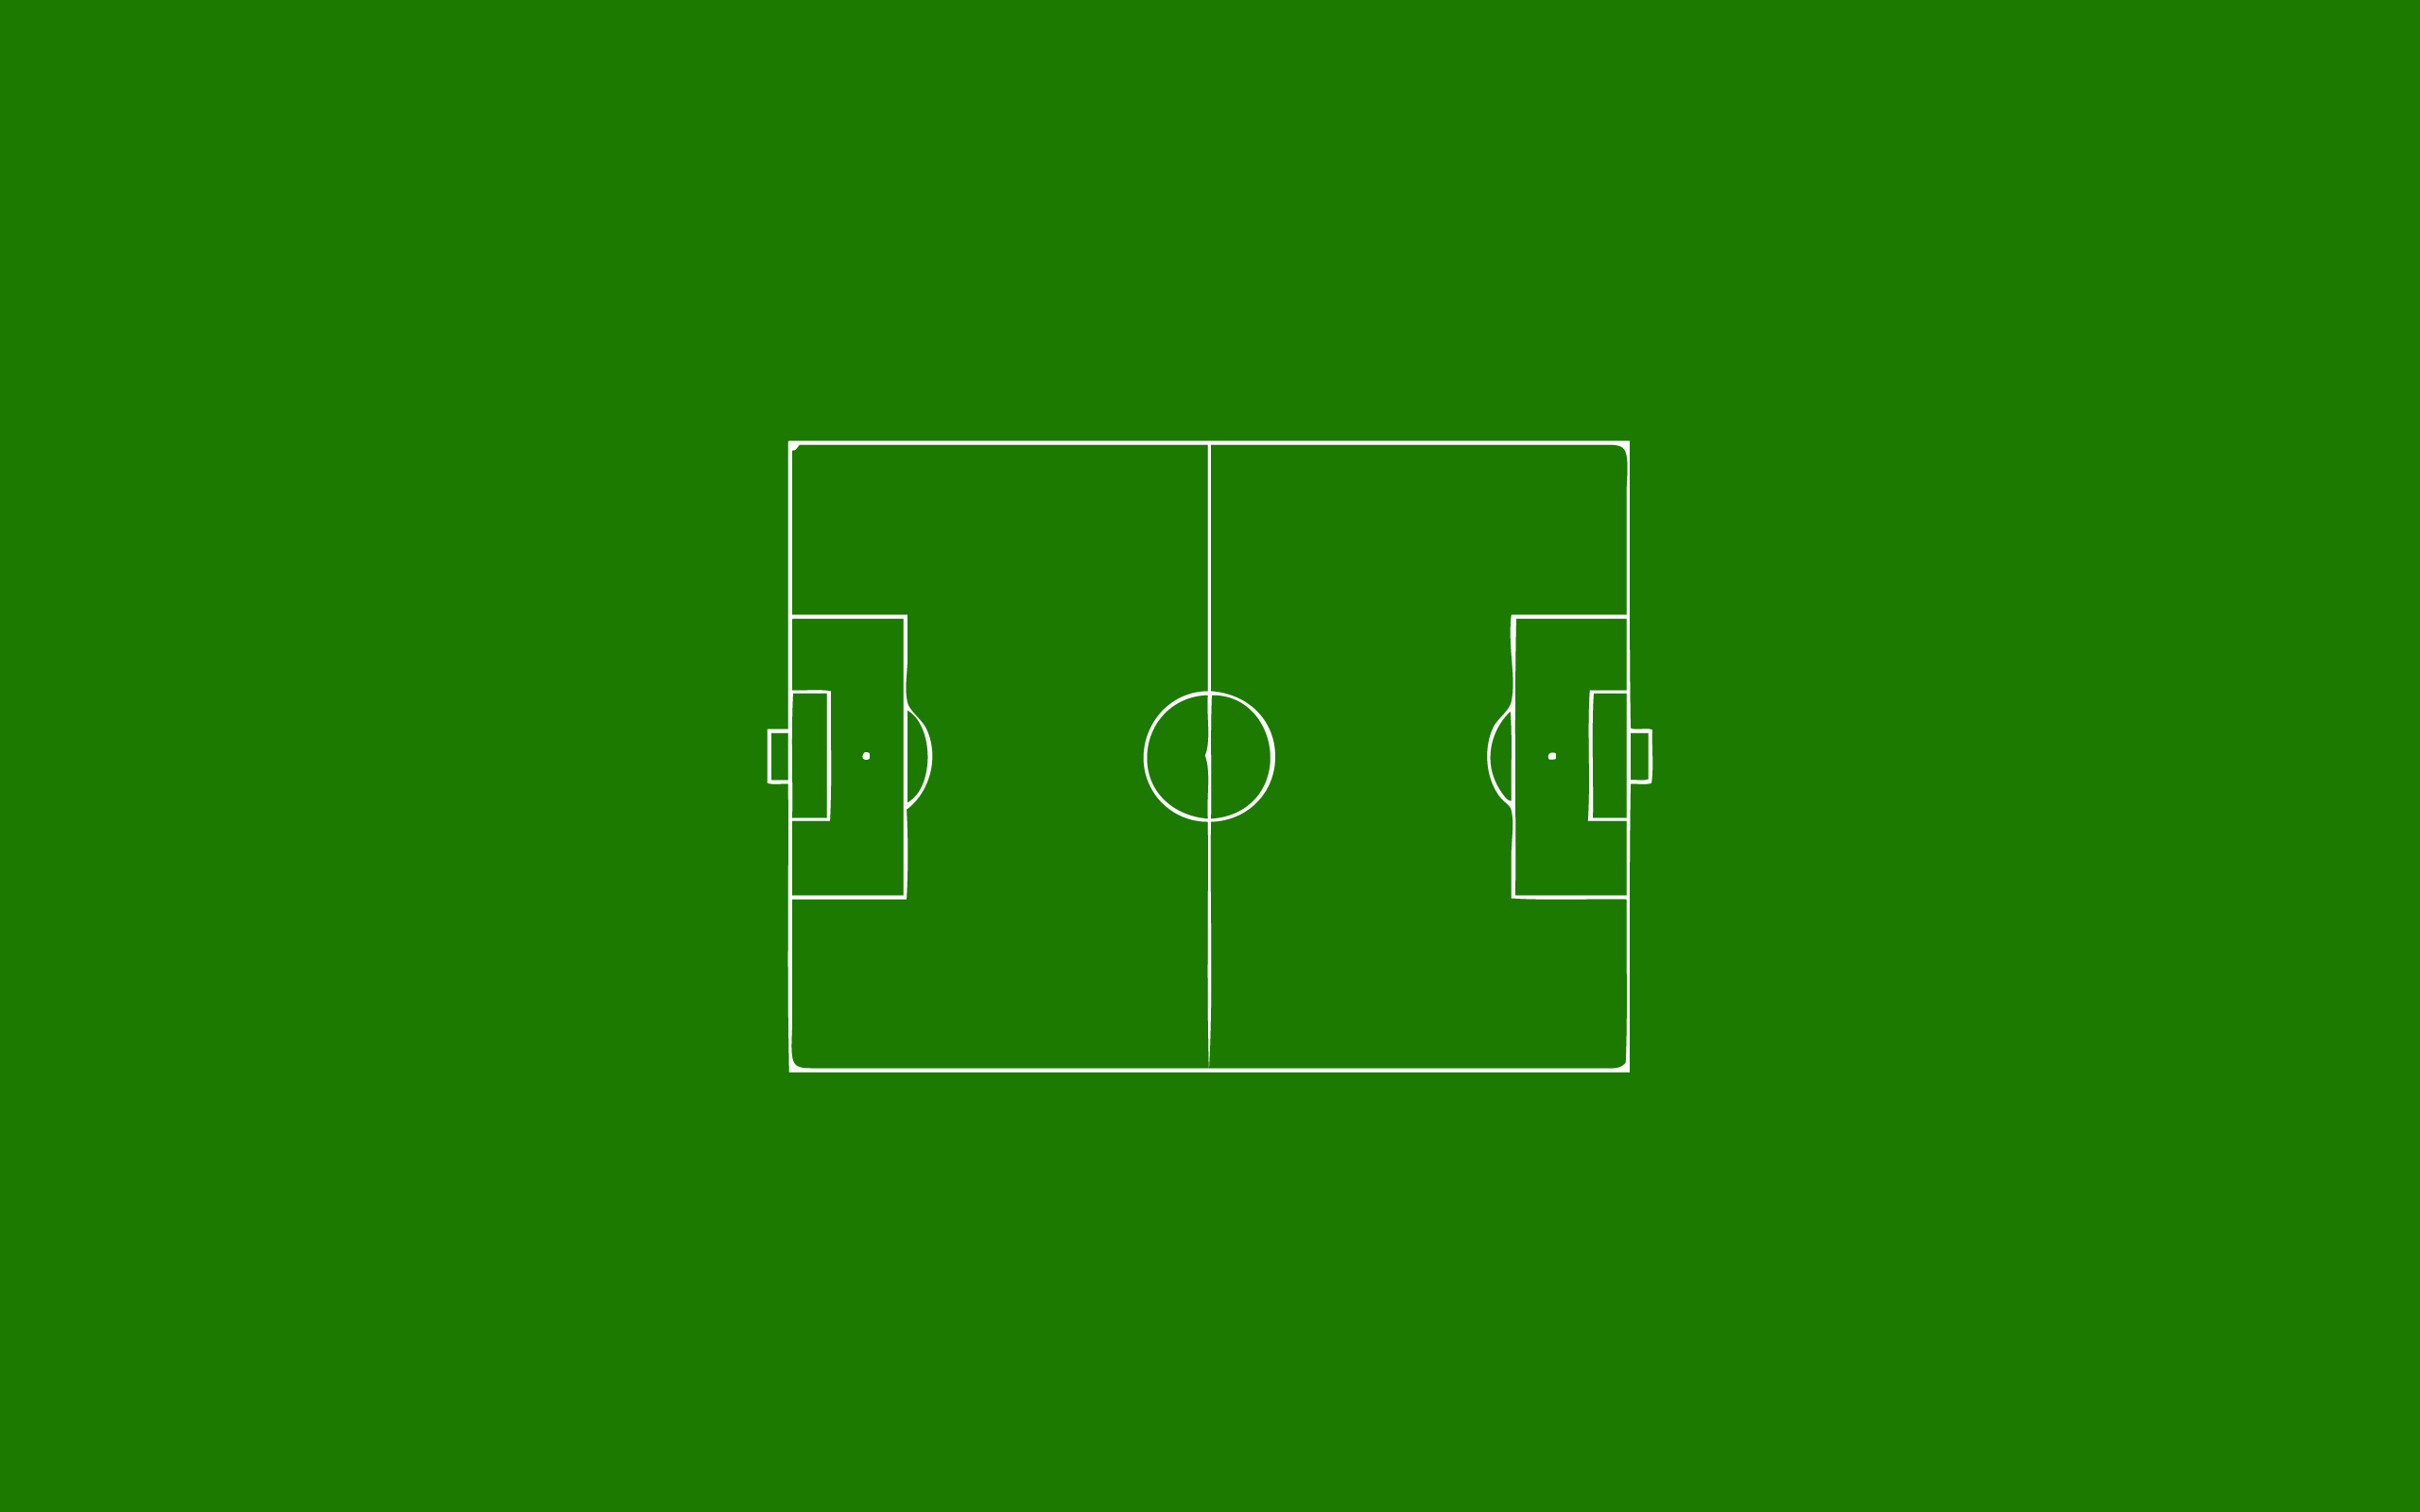 Green minimalistic Football field HD Wallpaper